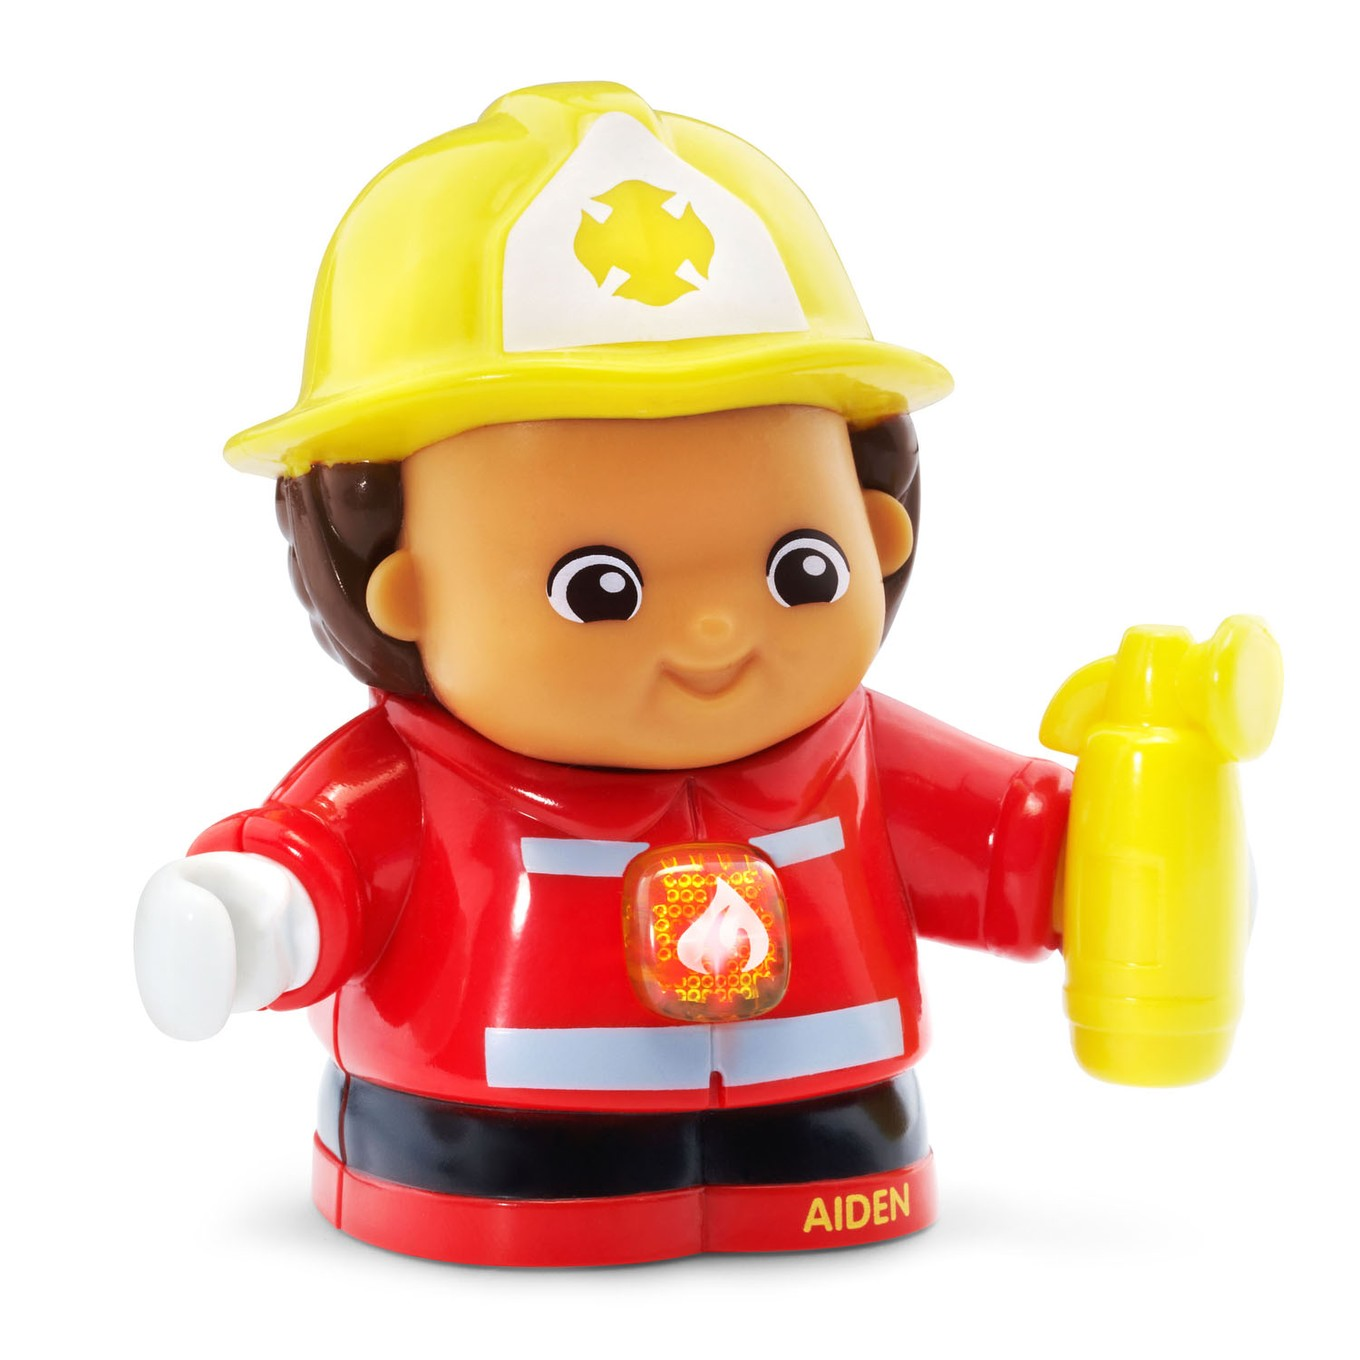 Go Go Smart Friends 174 │ Firefighter Aiden │ Vtech 174